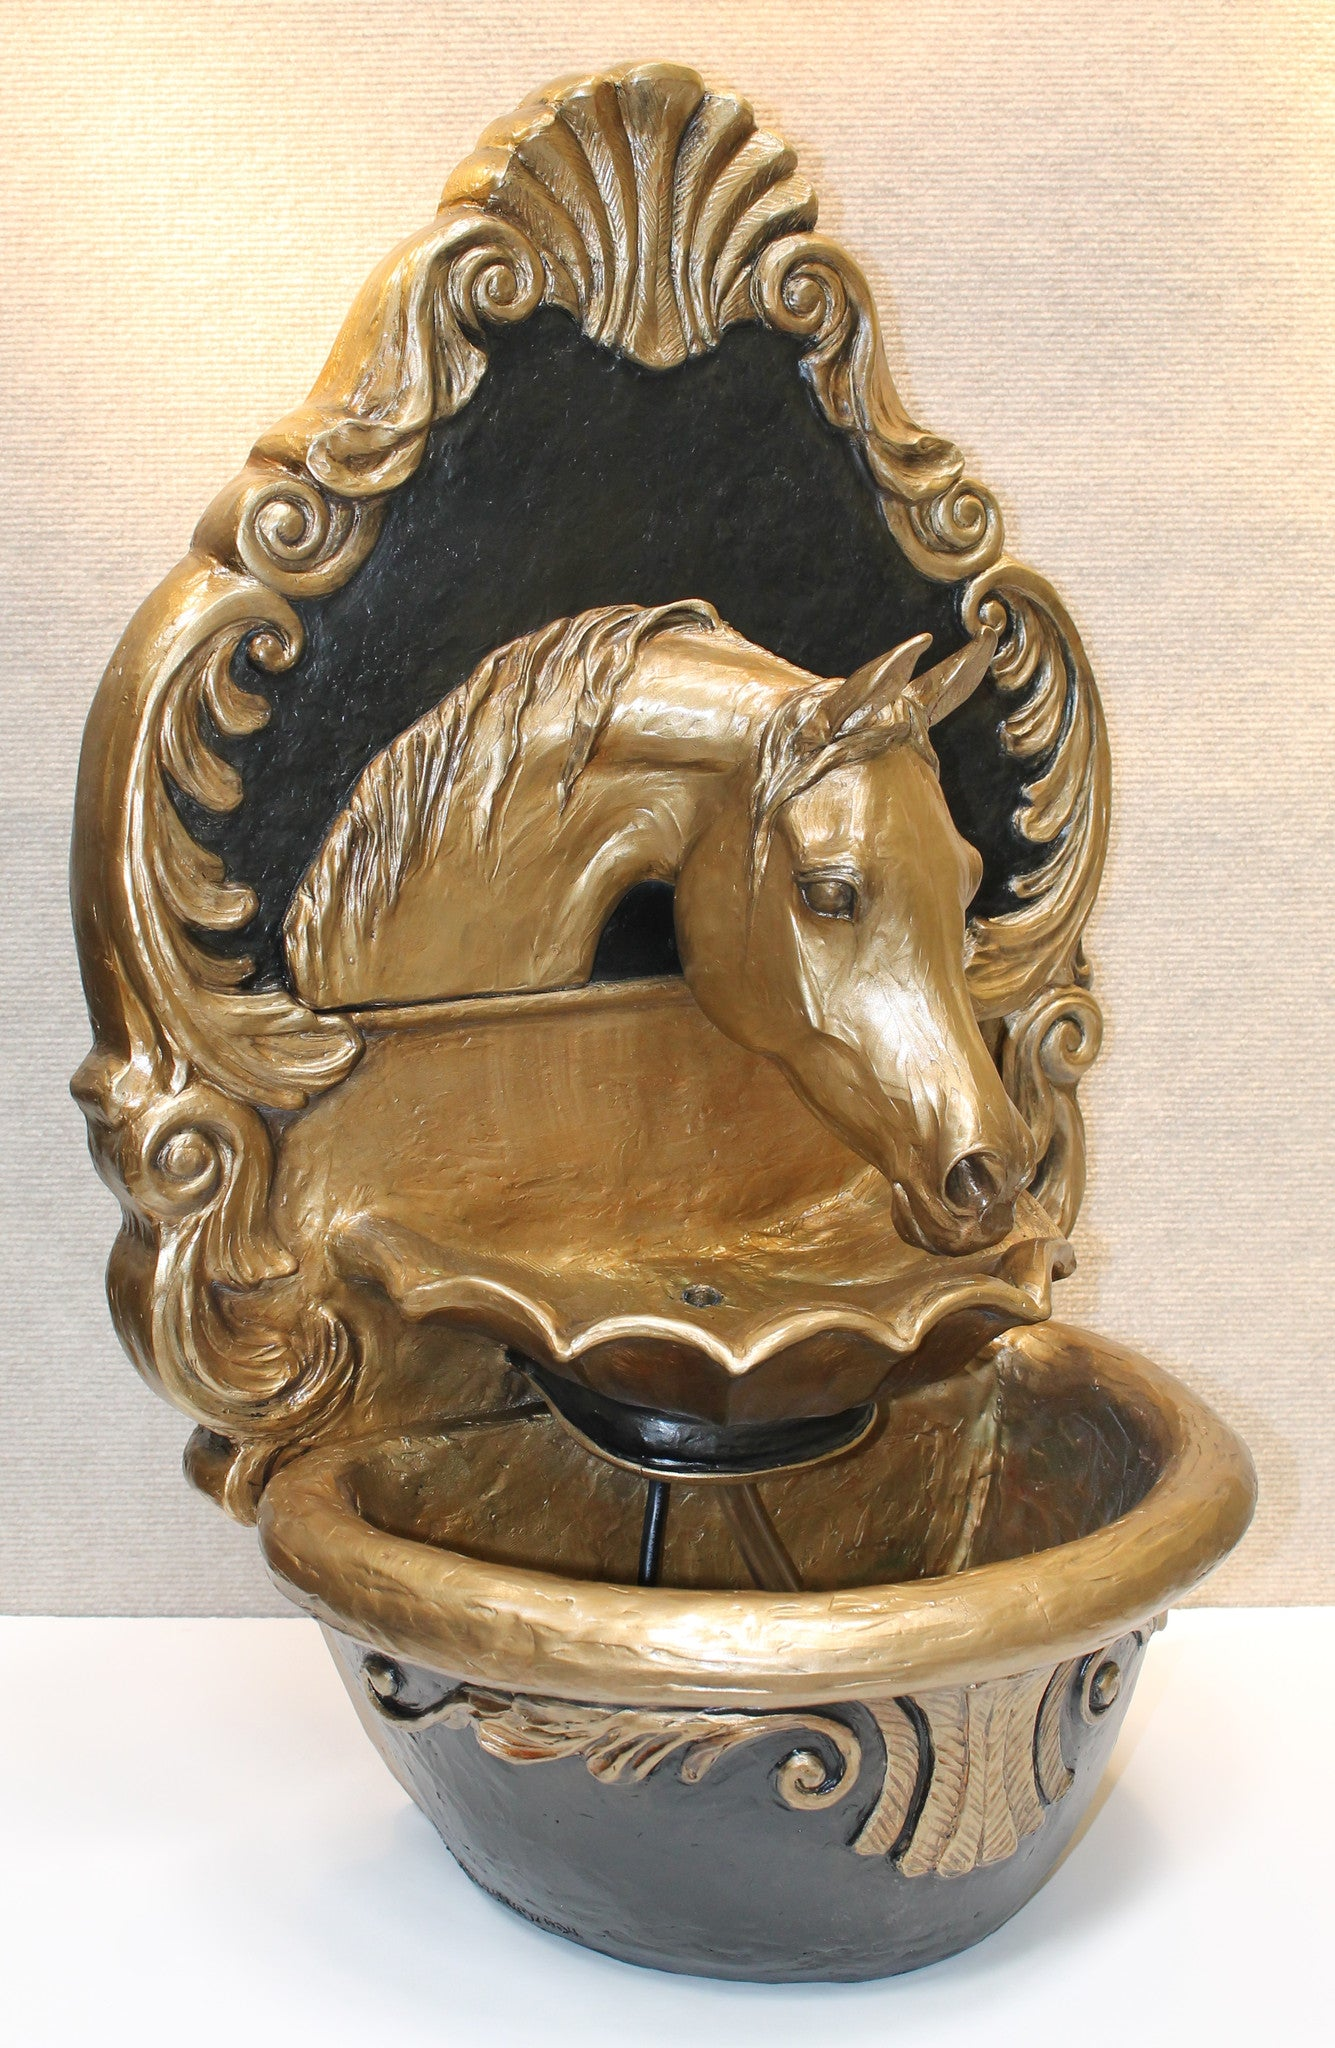 Arabian Horse Fountain (Royal Baroque) - Patricia Borum - 2